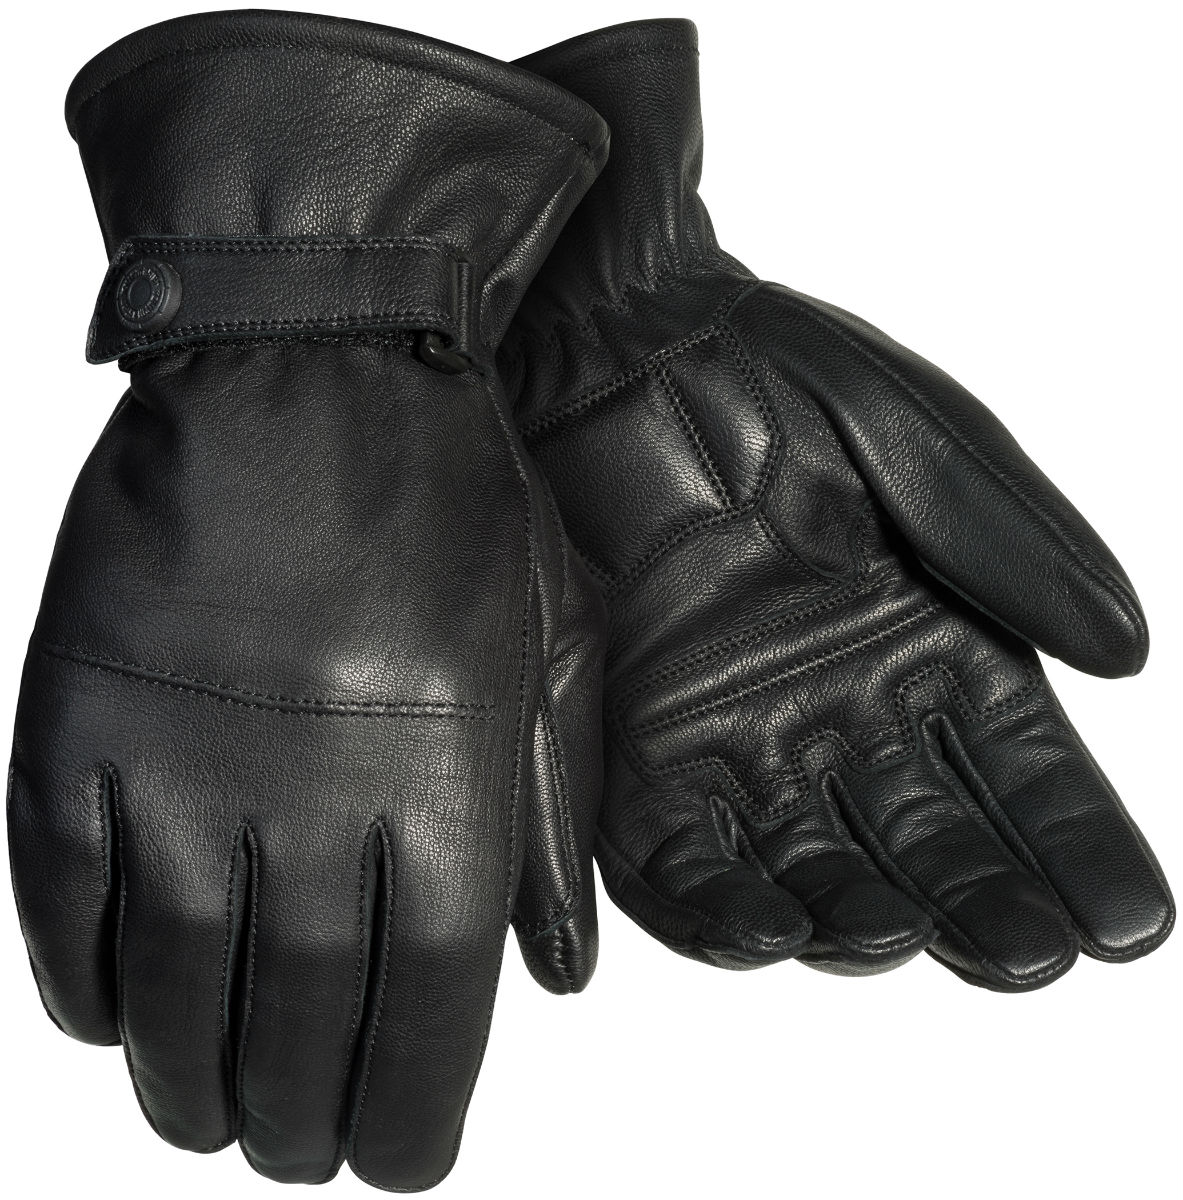 Tourmaster Midweight 2.0 Mens Leather Gloves Black